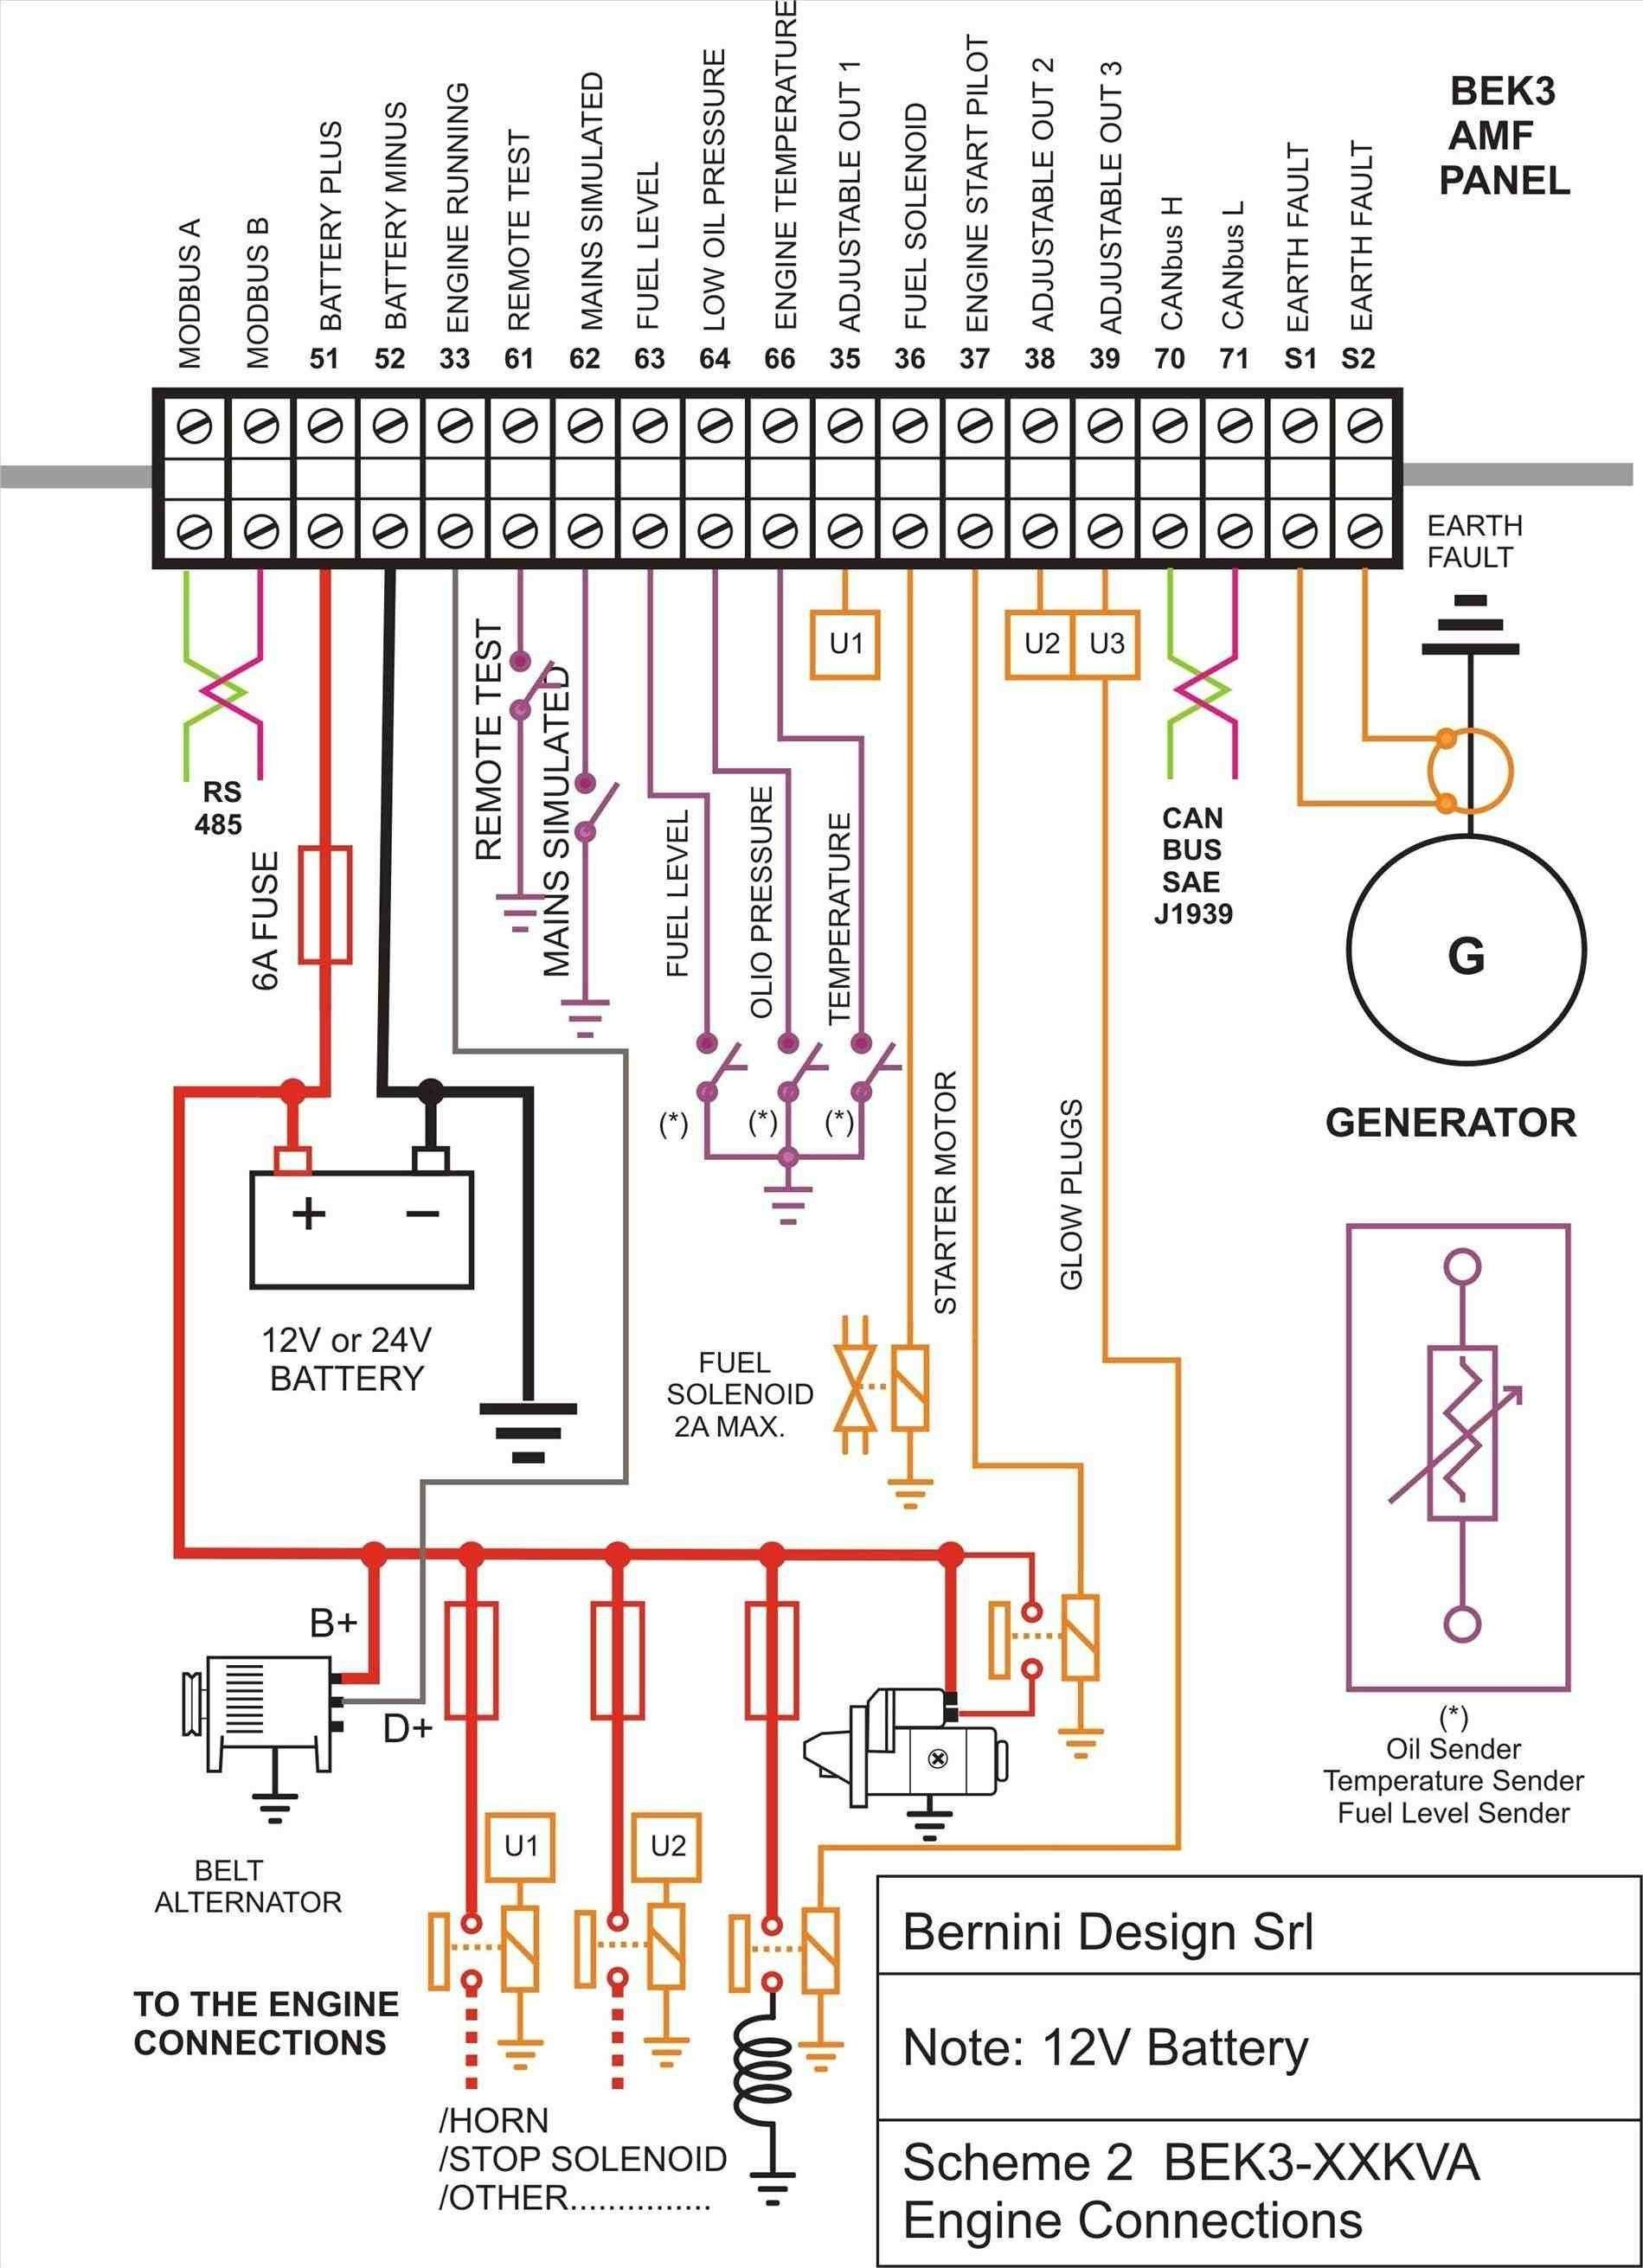 house wiring circuit diagram pdf fresh typical wiring diagram for house valid nice new circuit diagram [ 1899 x 2622 Pixel ]